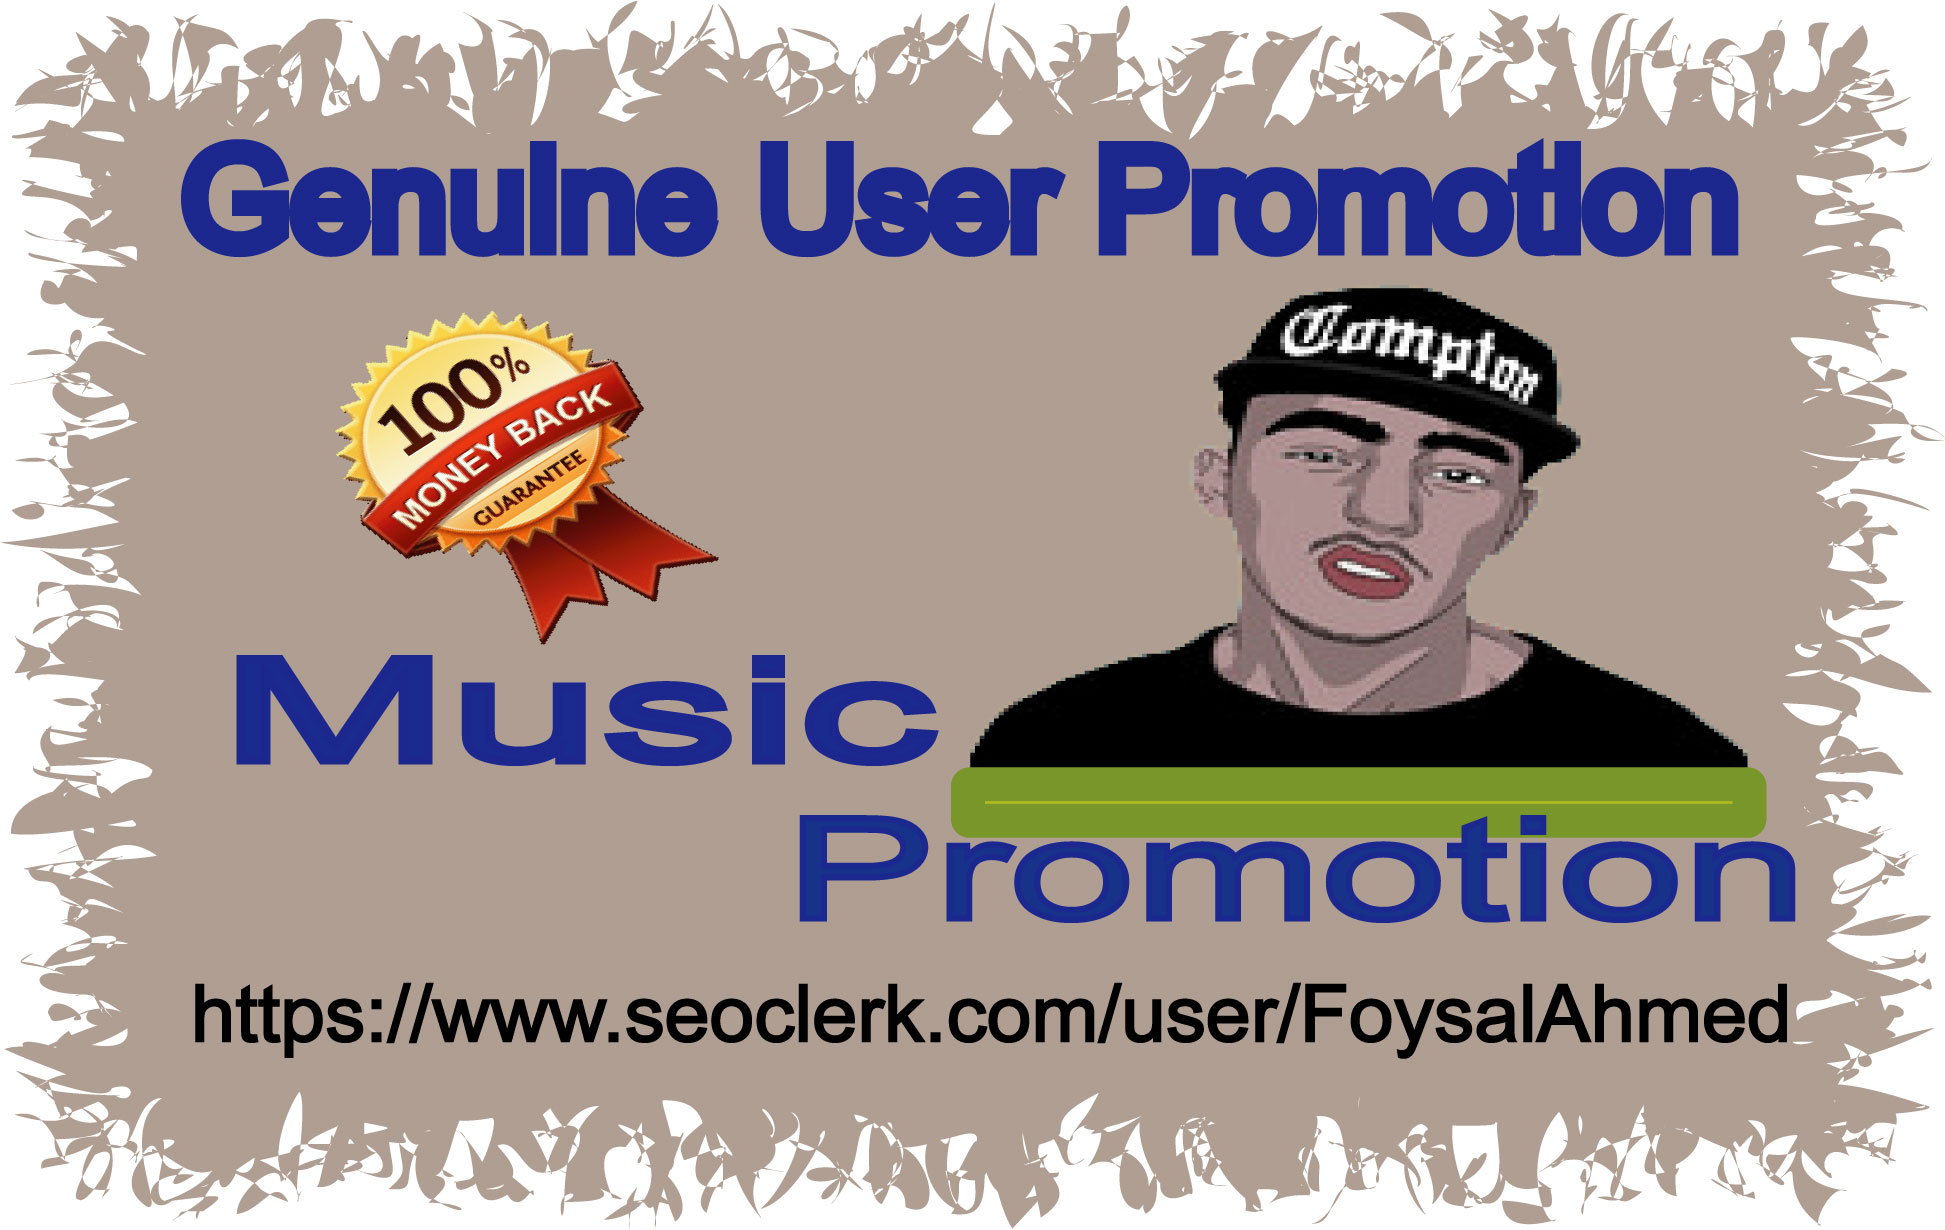 Effecttve Music Promotion 7000 Play & 85 Lke & 85 Re-post & 5 HQ Comm